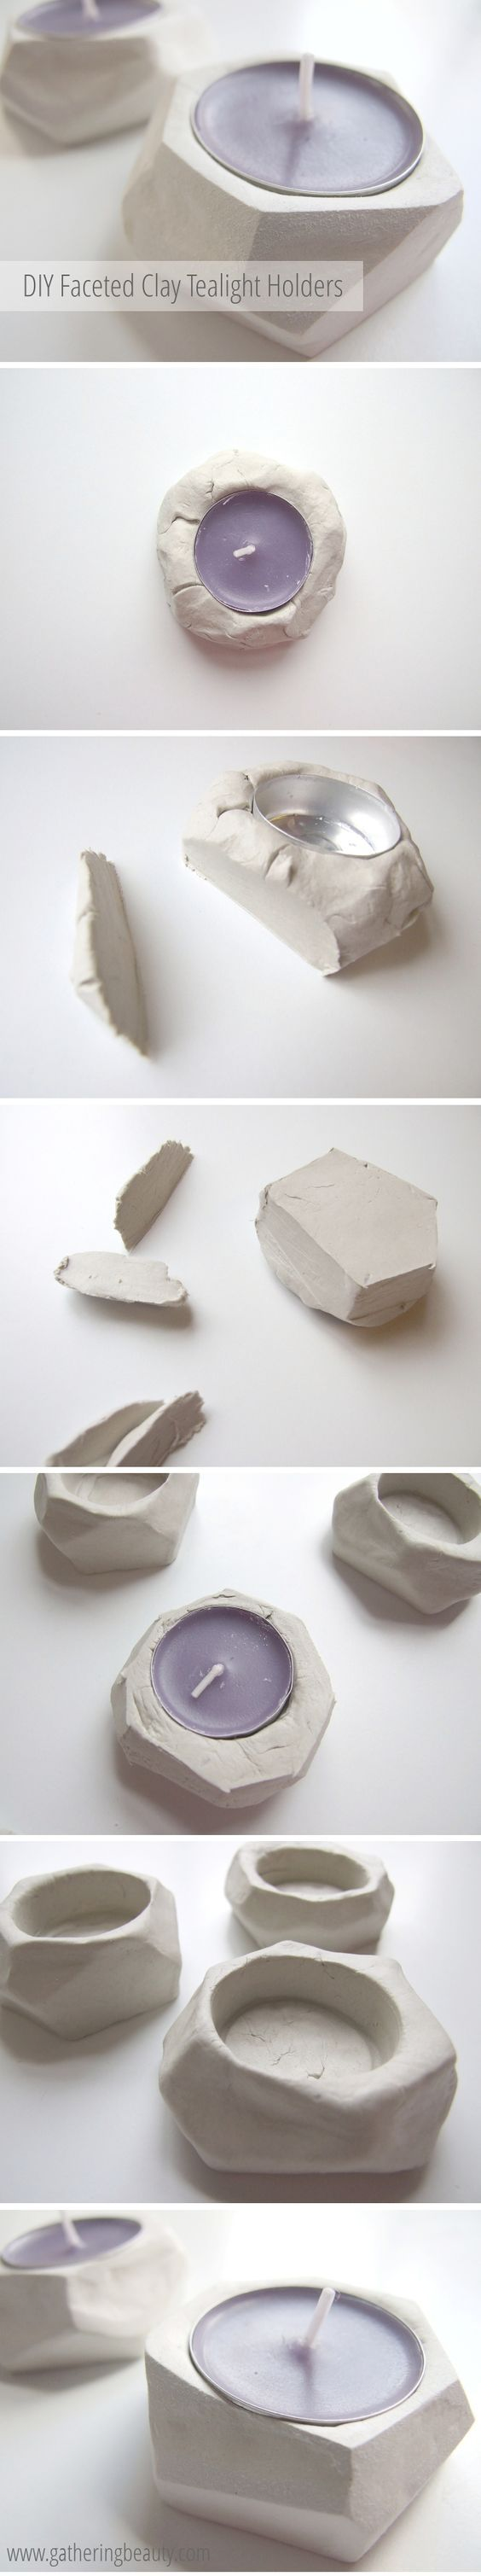 DIY geometric faceted clay tea light holders made from air drying clay: